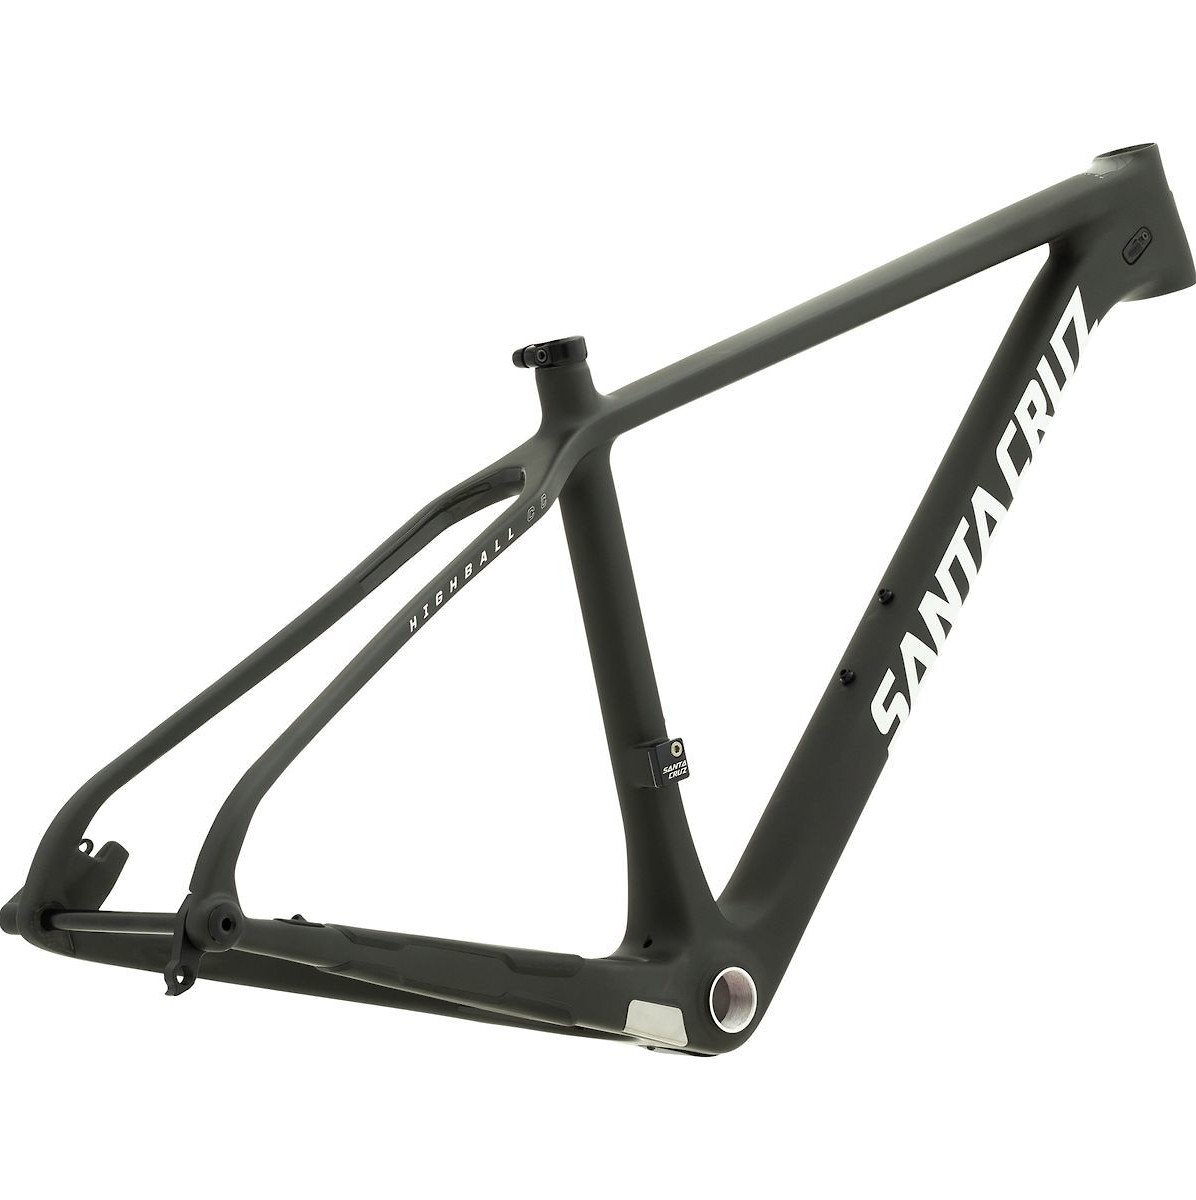 High Quality 2018 Santa Cruz Highball Frame · 2018_SantaCruz_Highball Rear ·  2018_SantaCruz_Highball Frame Detail · 2018_SantaCruz_Highball_BottomBracket